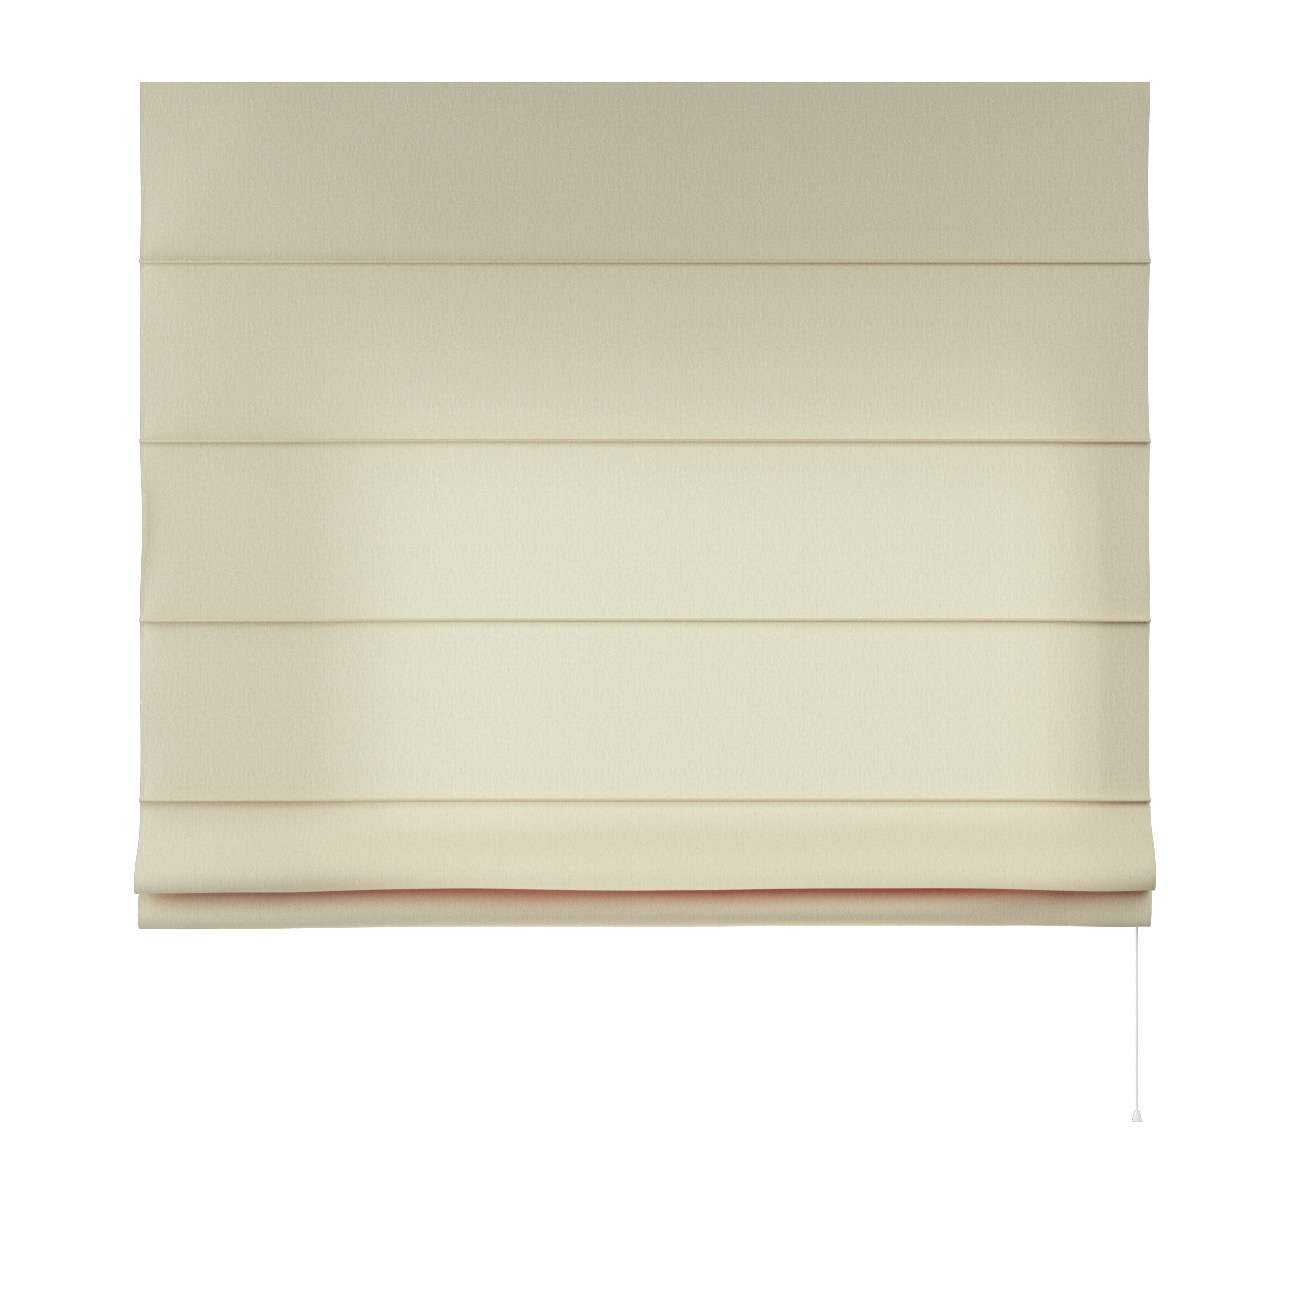 Capri roman blind 80 x 170 cm (31.5 x 67 inch) in collection Chenille, fabric: 702-22